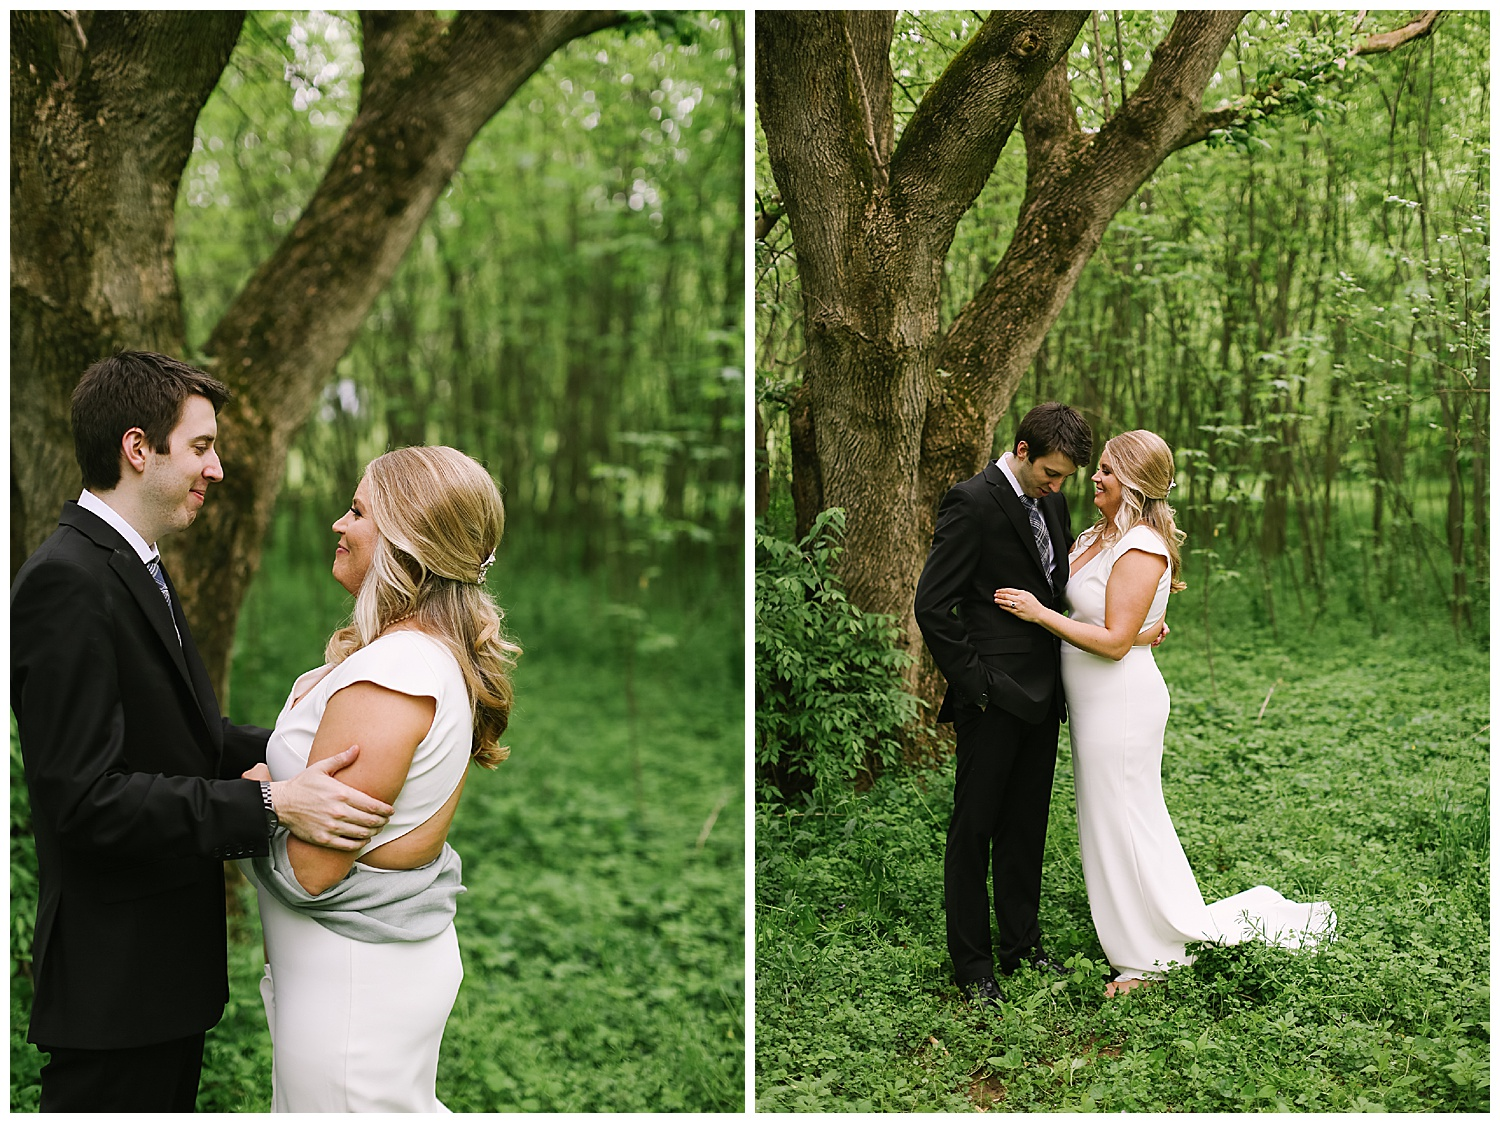 trent.and.kendra.photography.elopement.intimate.wedding-44.jpg